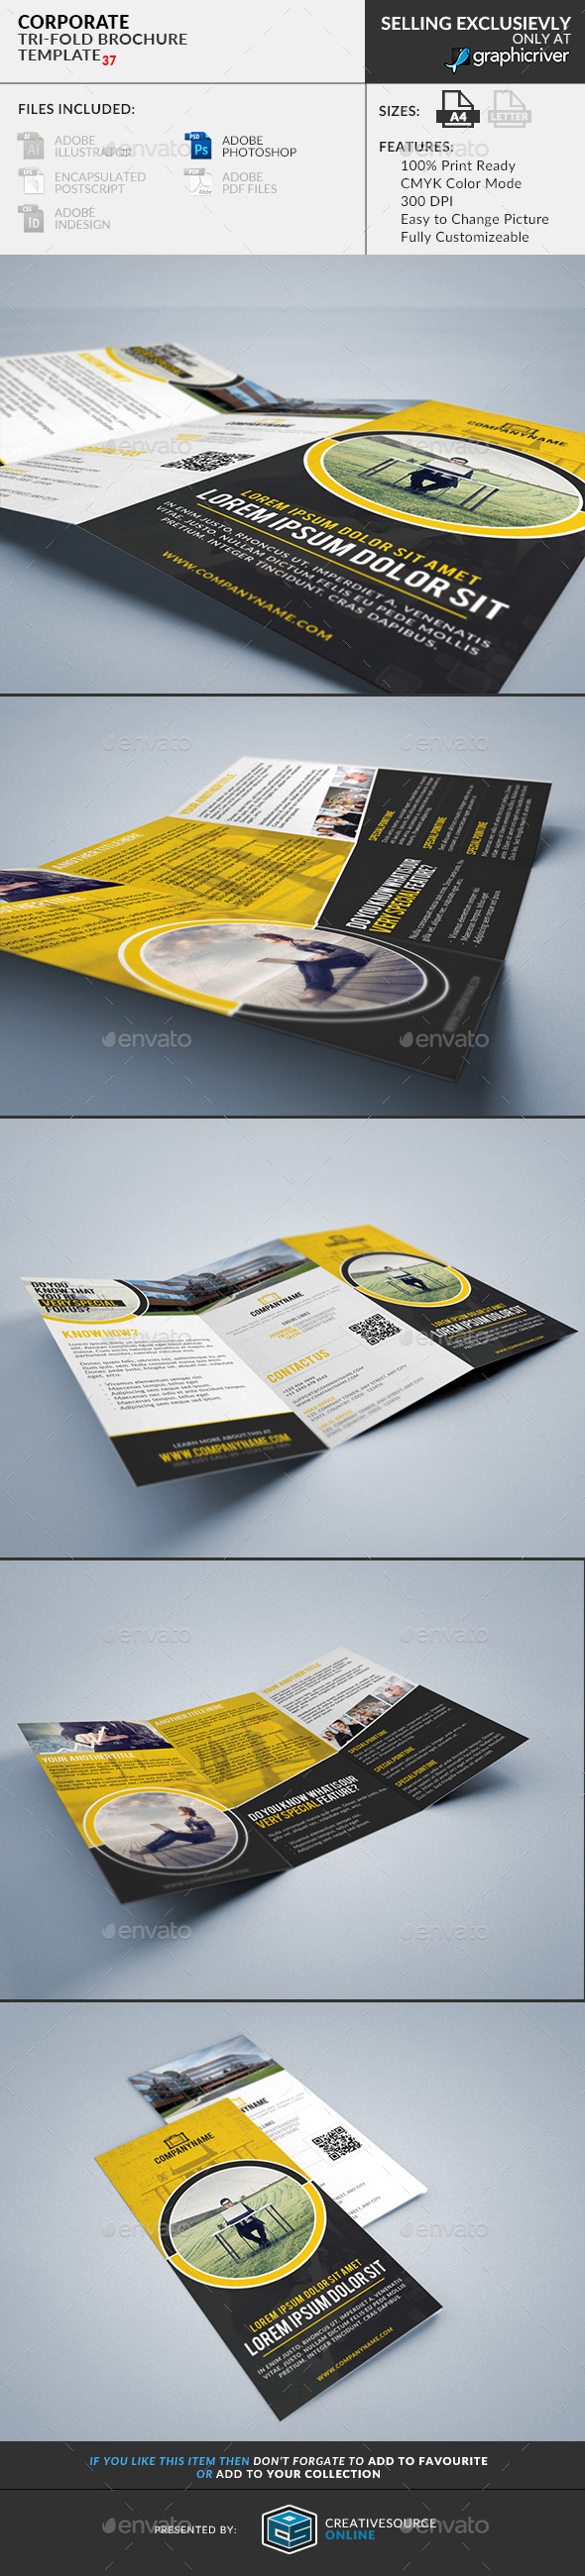 Trifold Brochure 37: Corporate - Corporate Brochures